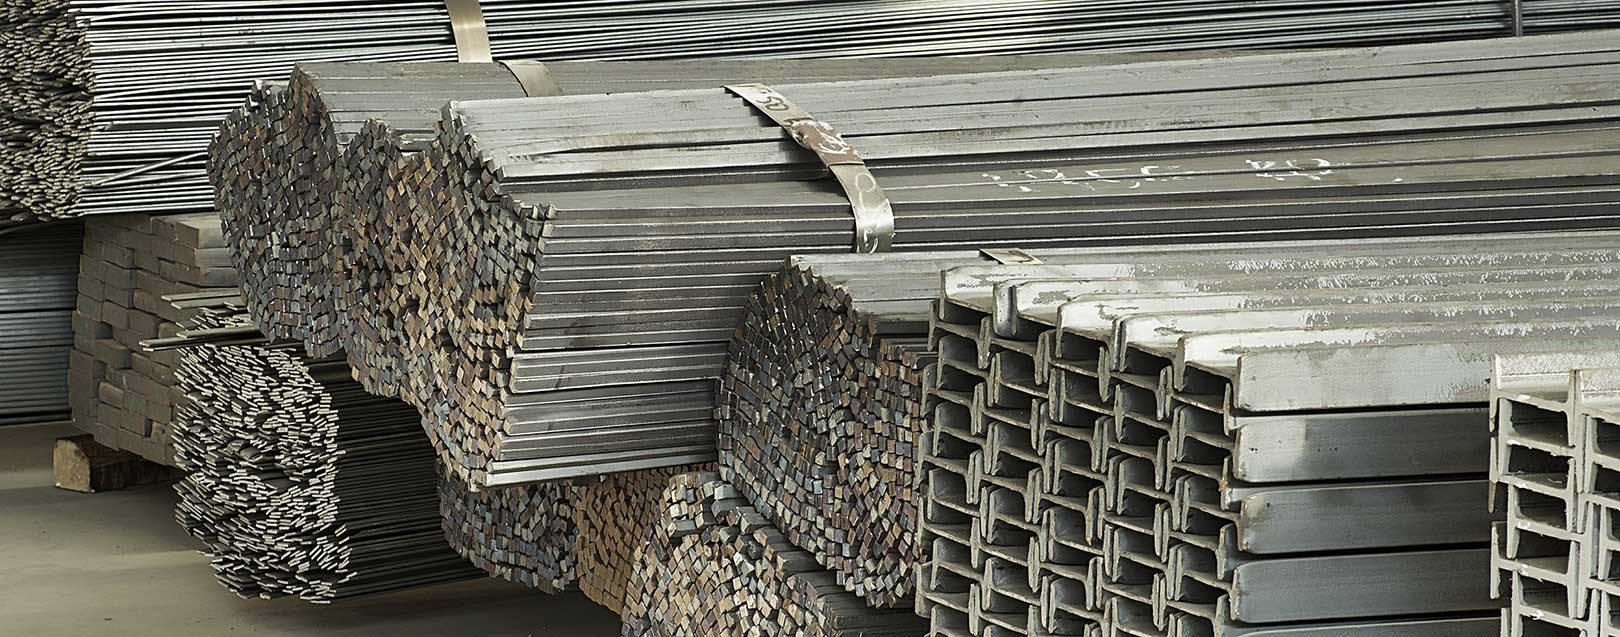 Japan files complaint in WTO against India regarding steps taken on imports of iron and steel